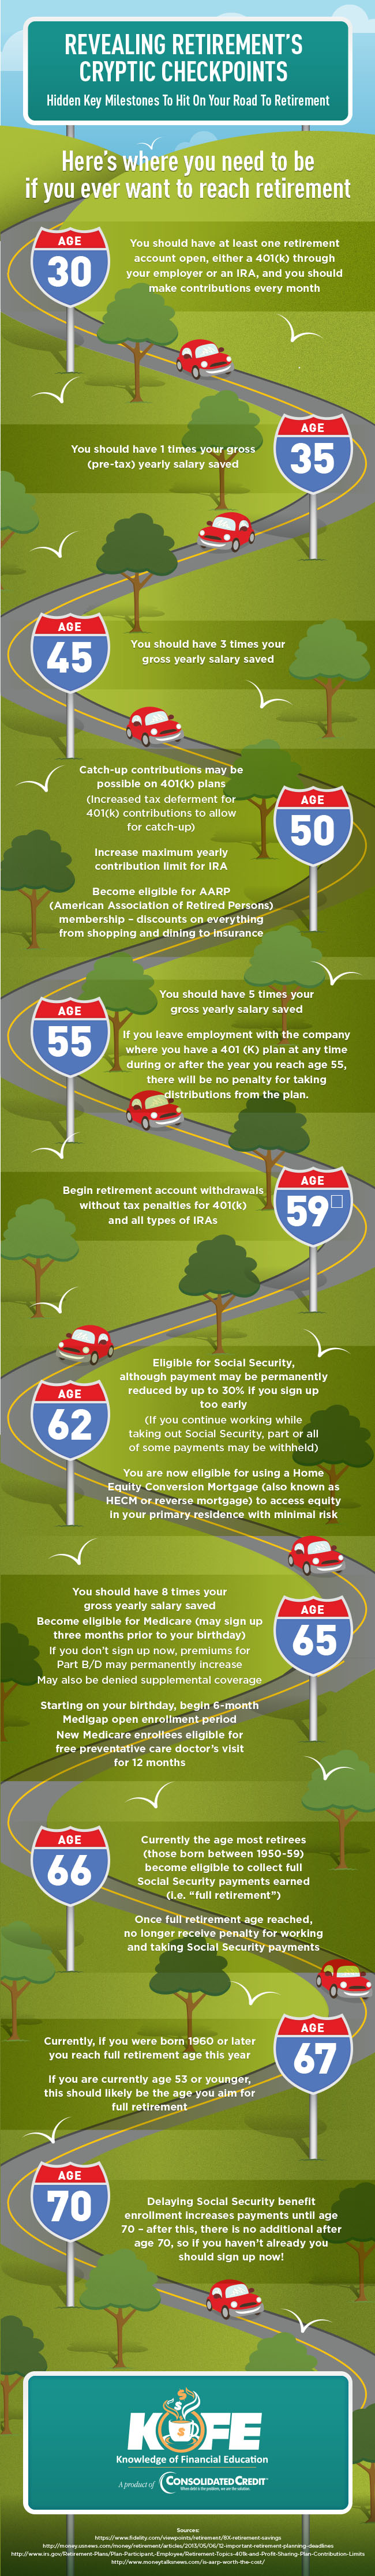 Revealing Retirement Cryptic Checkpoints infographic